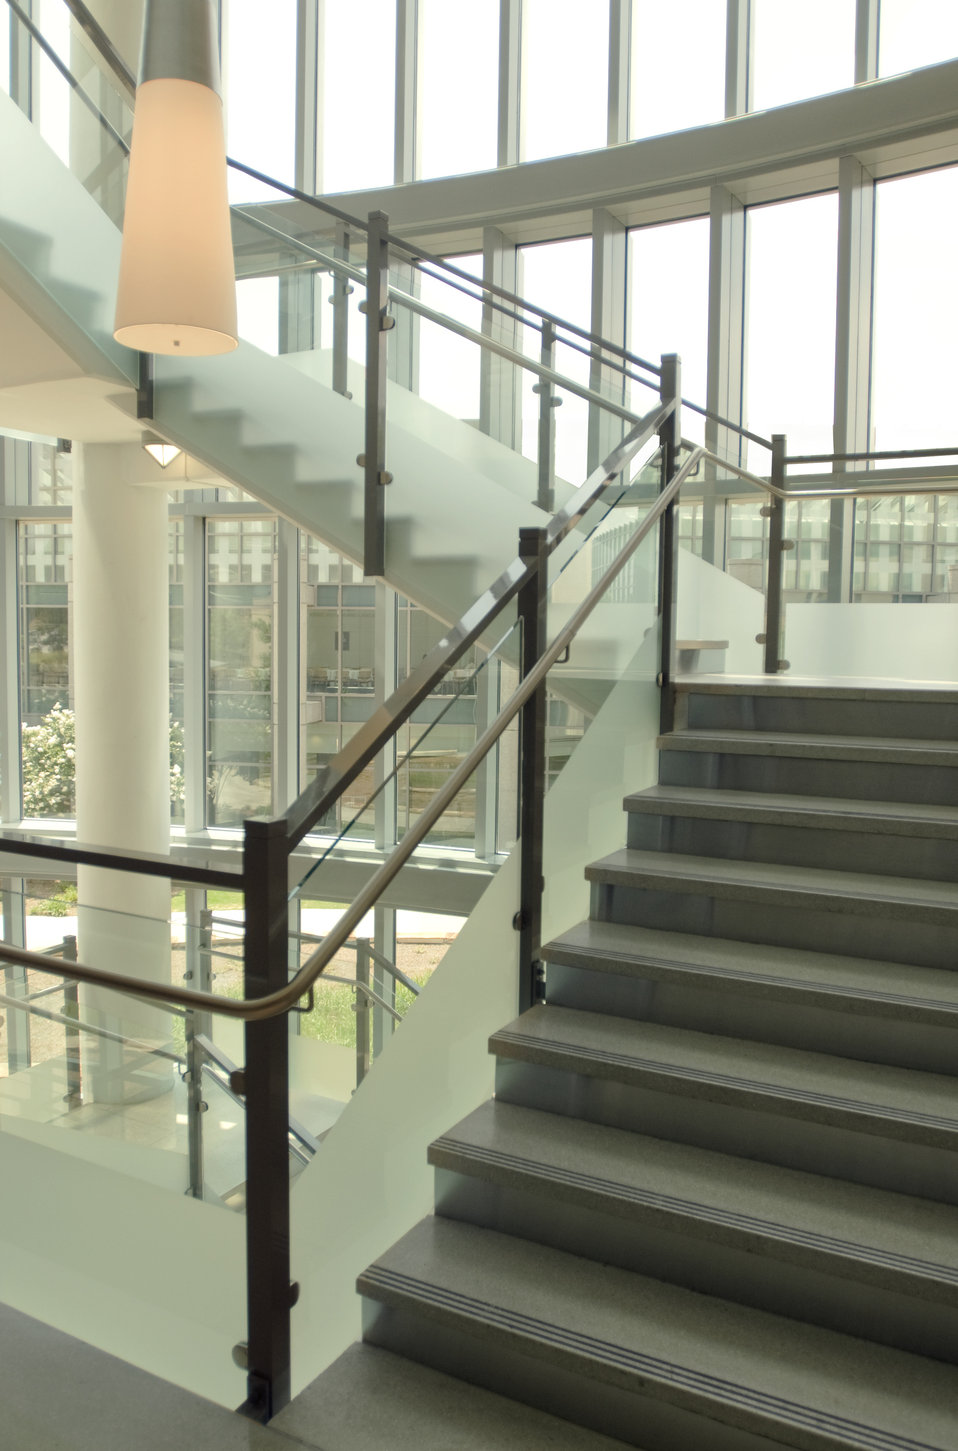 This image depicts a stairwell constructed in an open-architectural style, which was located on the Centers for Disease Control's (CDC) Royb